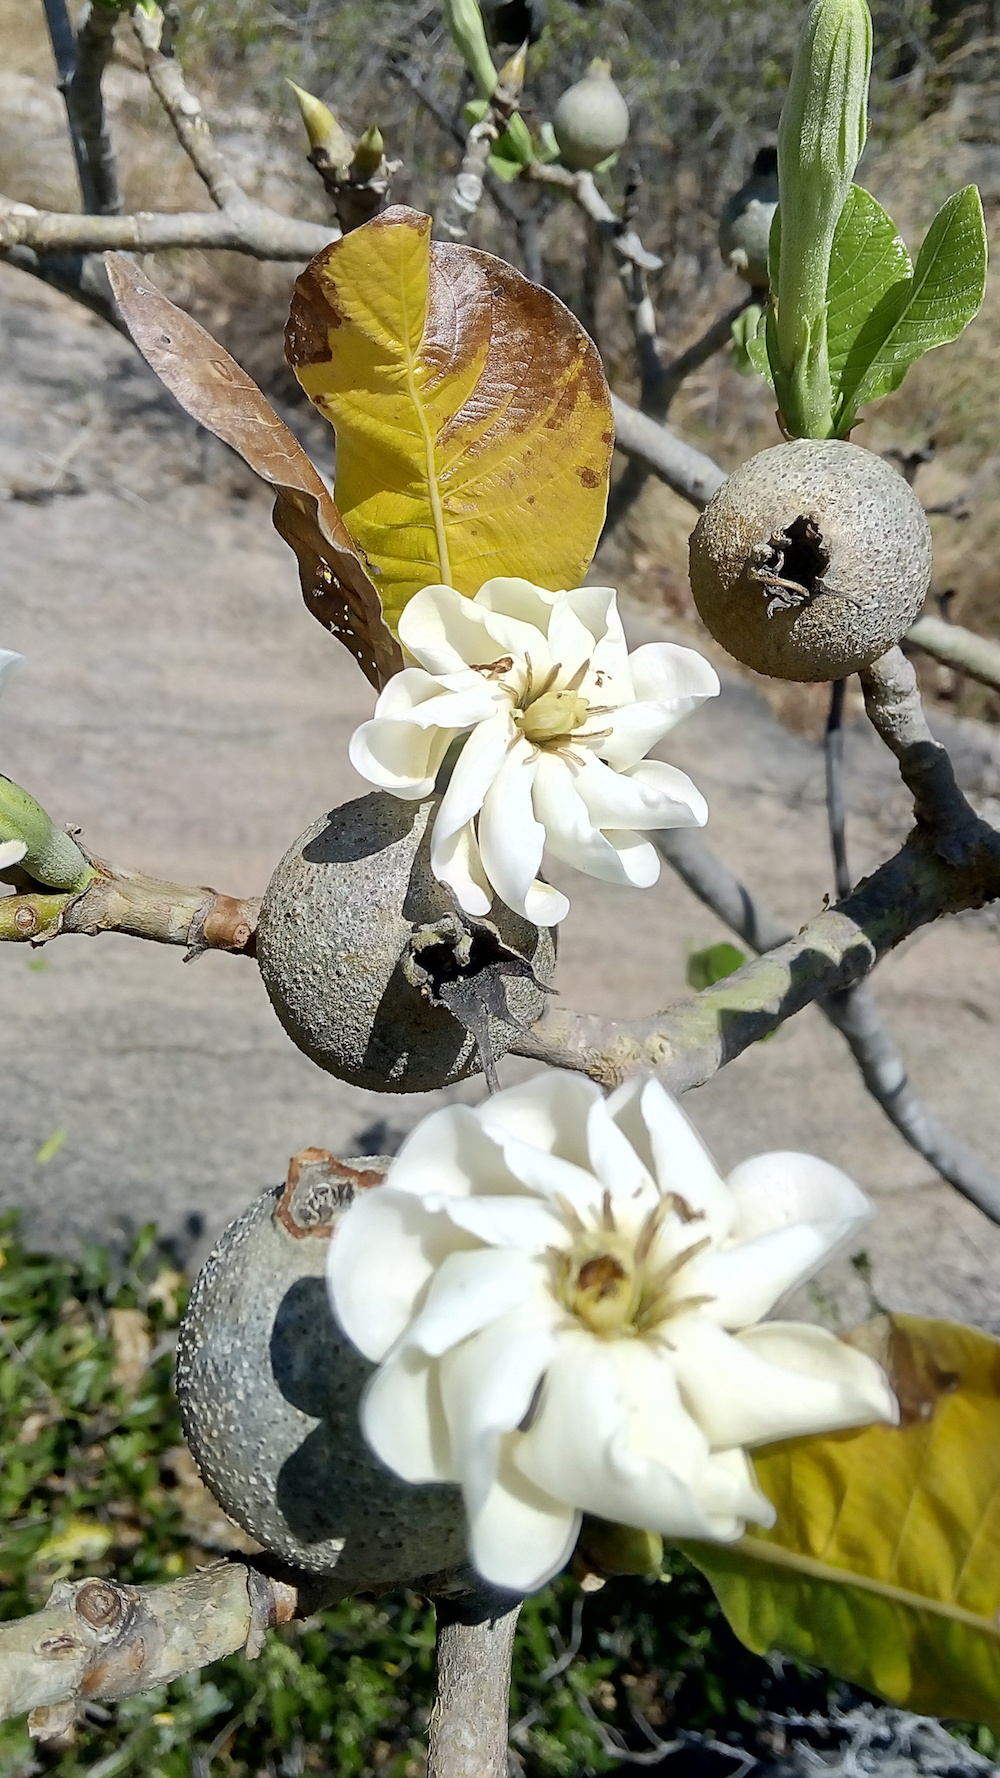 Gardenia latifolia  (ಕಾಡು ಬಿಕ್ಕೆ) is an ornamental treelet bearing mildly fragrant flowers which bloom around February. Its fruits last for most part of the year and feed birds and other fauna. Birds sense their ripening and devour most of these seeds and disperse them. The sweet fruits are also enjoyed by humans. Kaadu Bikke is common in the dry forests of Dharwad, Belgaum, Bijapur, Bellary and Tumkur. As its Latin name indicates, this tree is an ideal ornamental one for rural and urban planting.